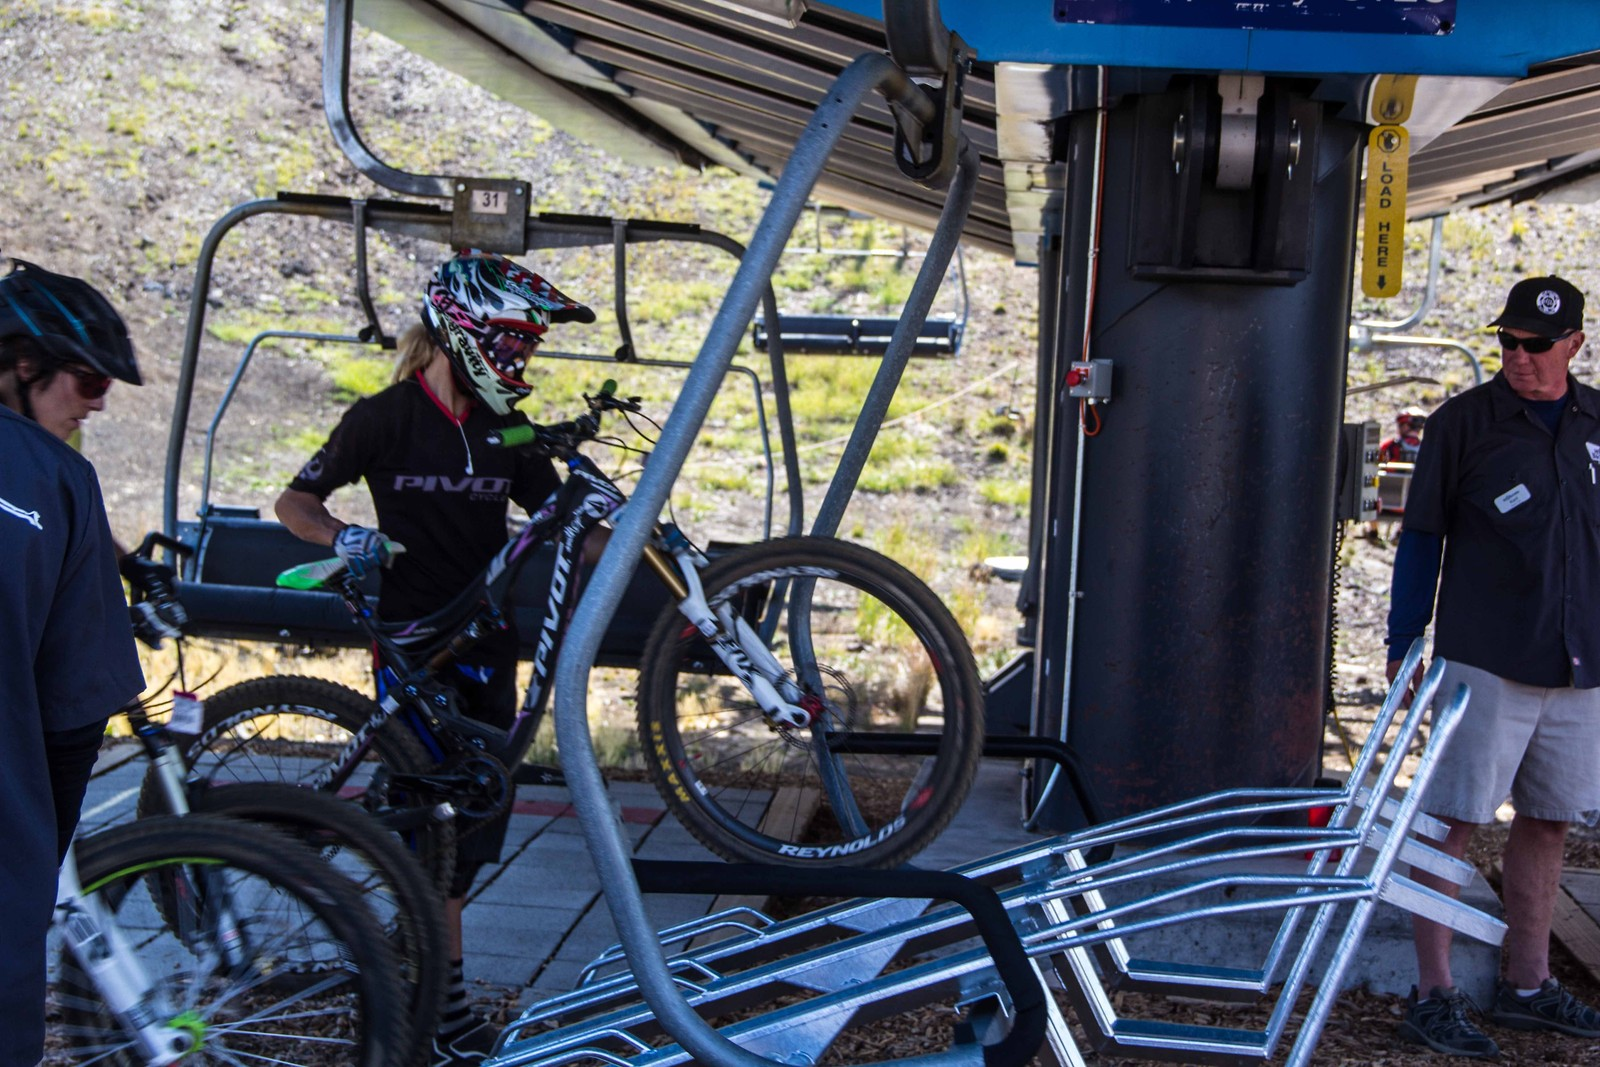 Loading up!  - Yuroshek - Mountain Biking Pictures - Vital MTB